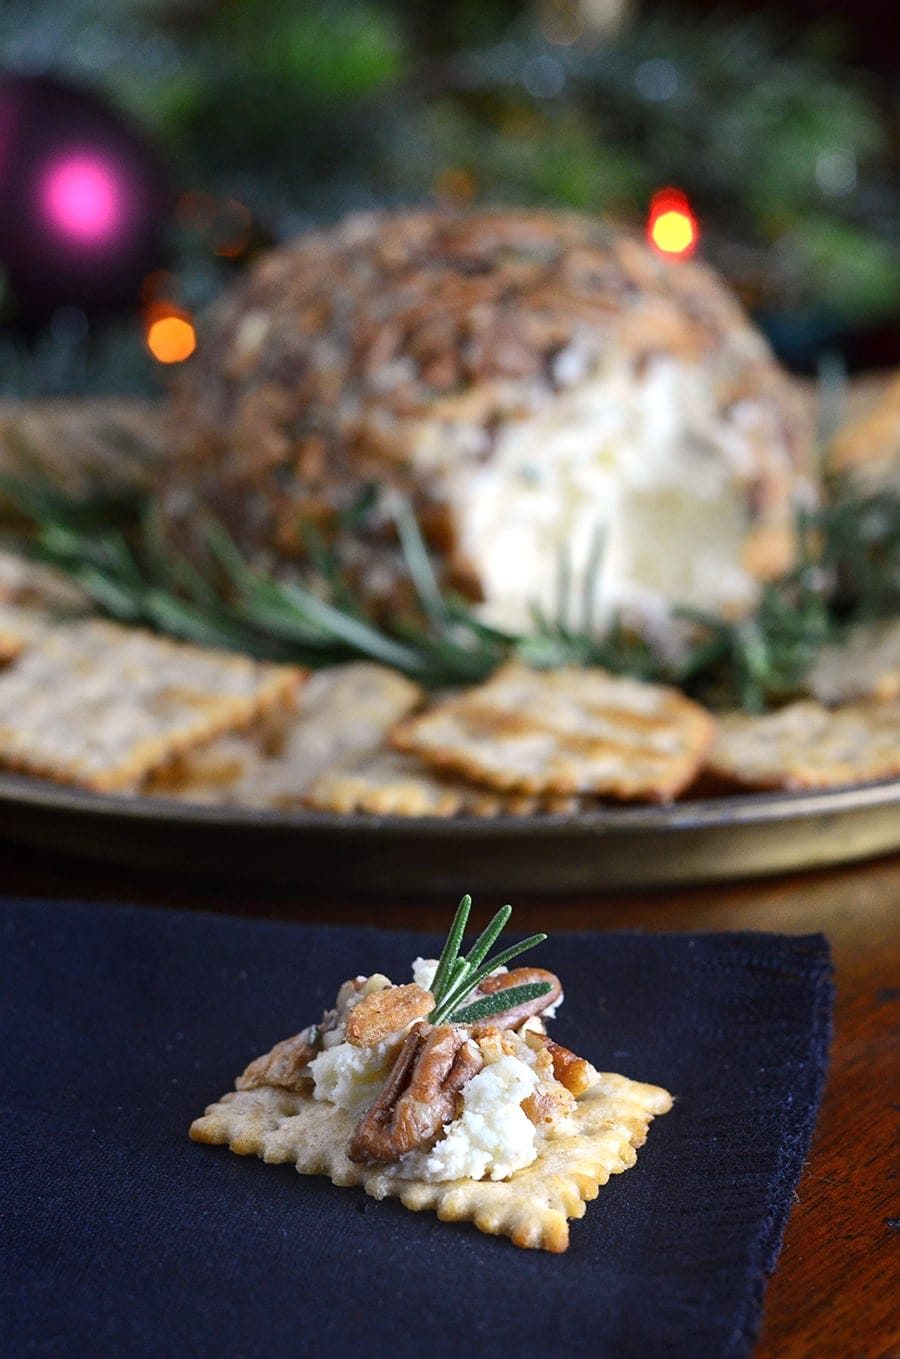 Cheese Cracker on Napkin Web - Easy Cheddar Cheese Ball with Butter Roasted Apple Chips, Pecans and Rosemary